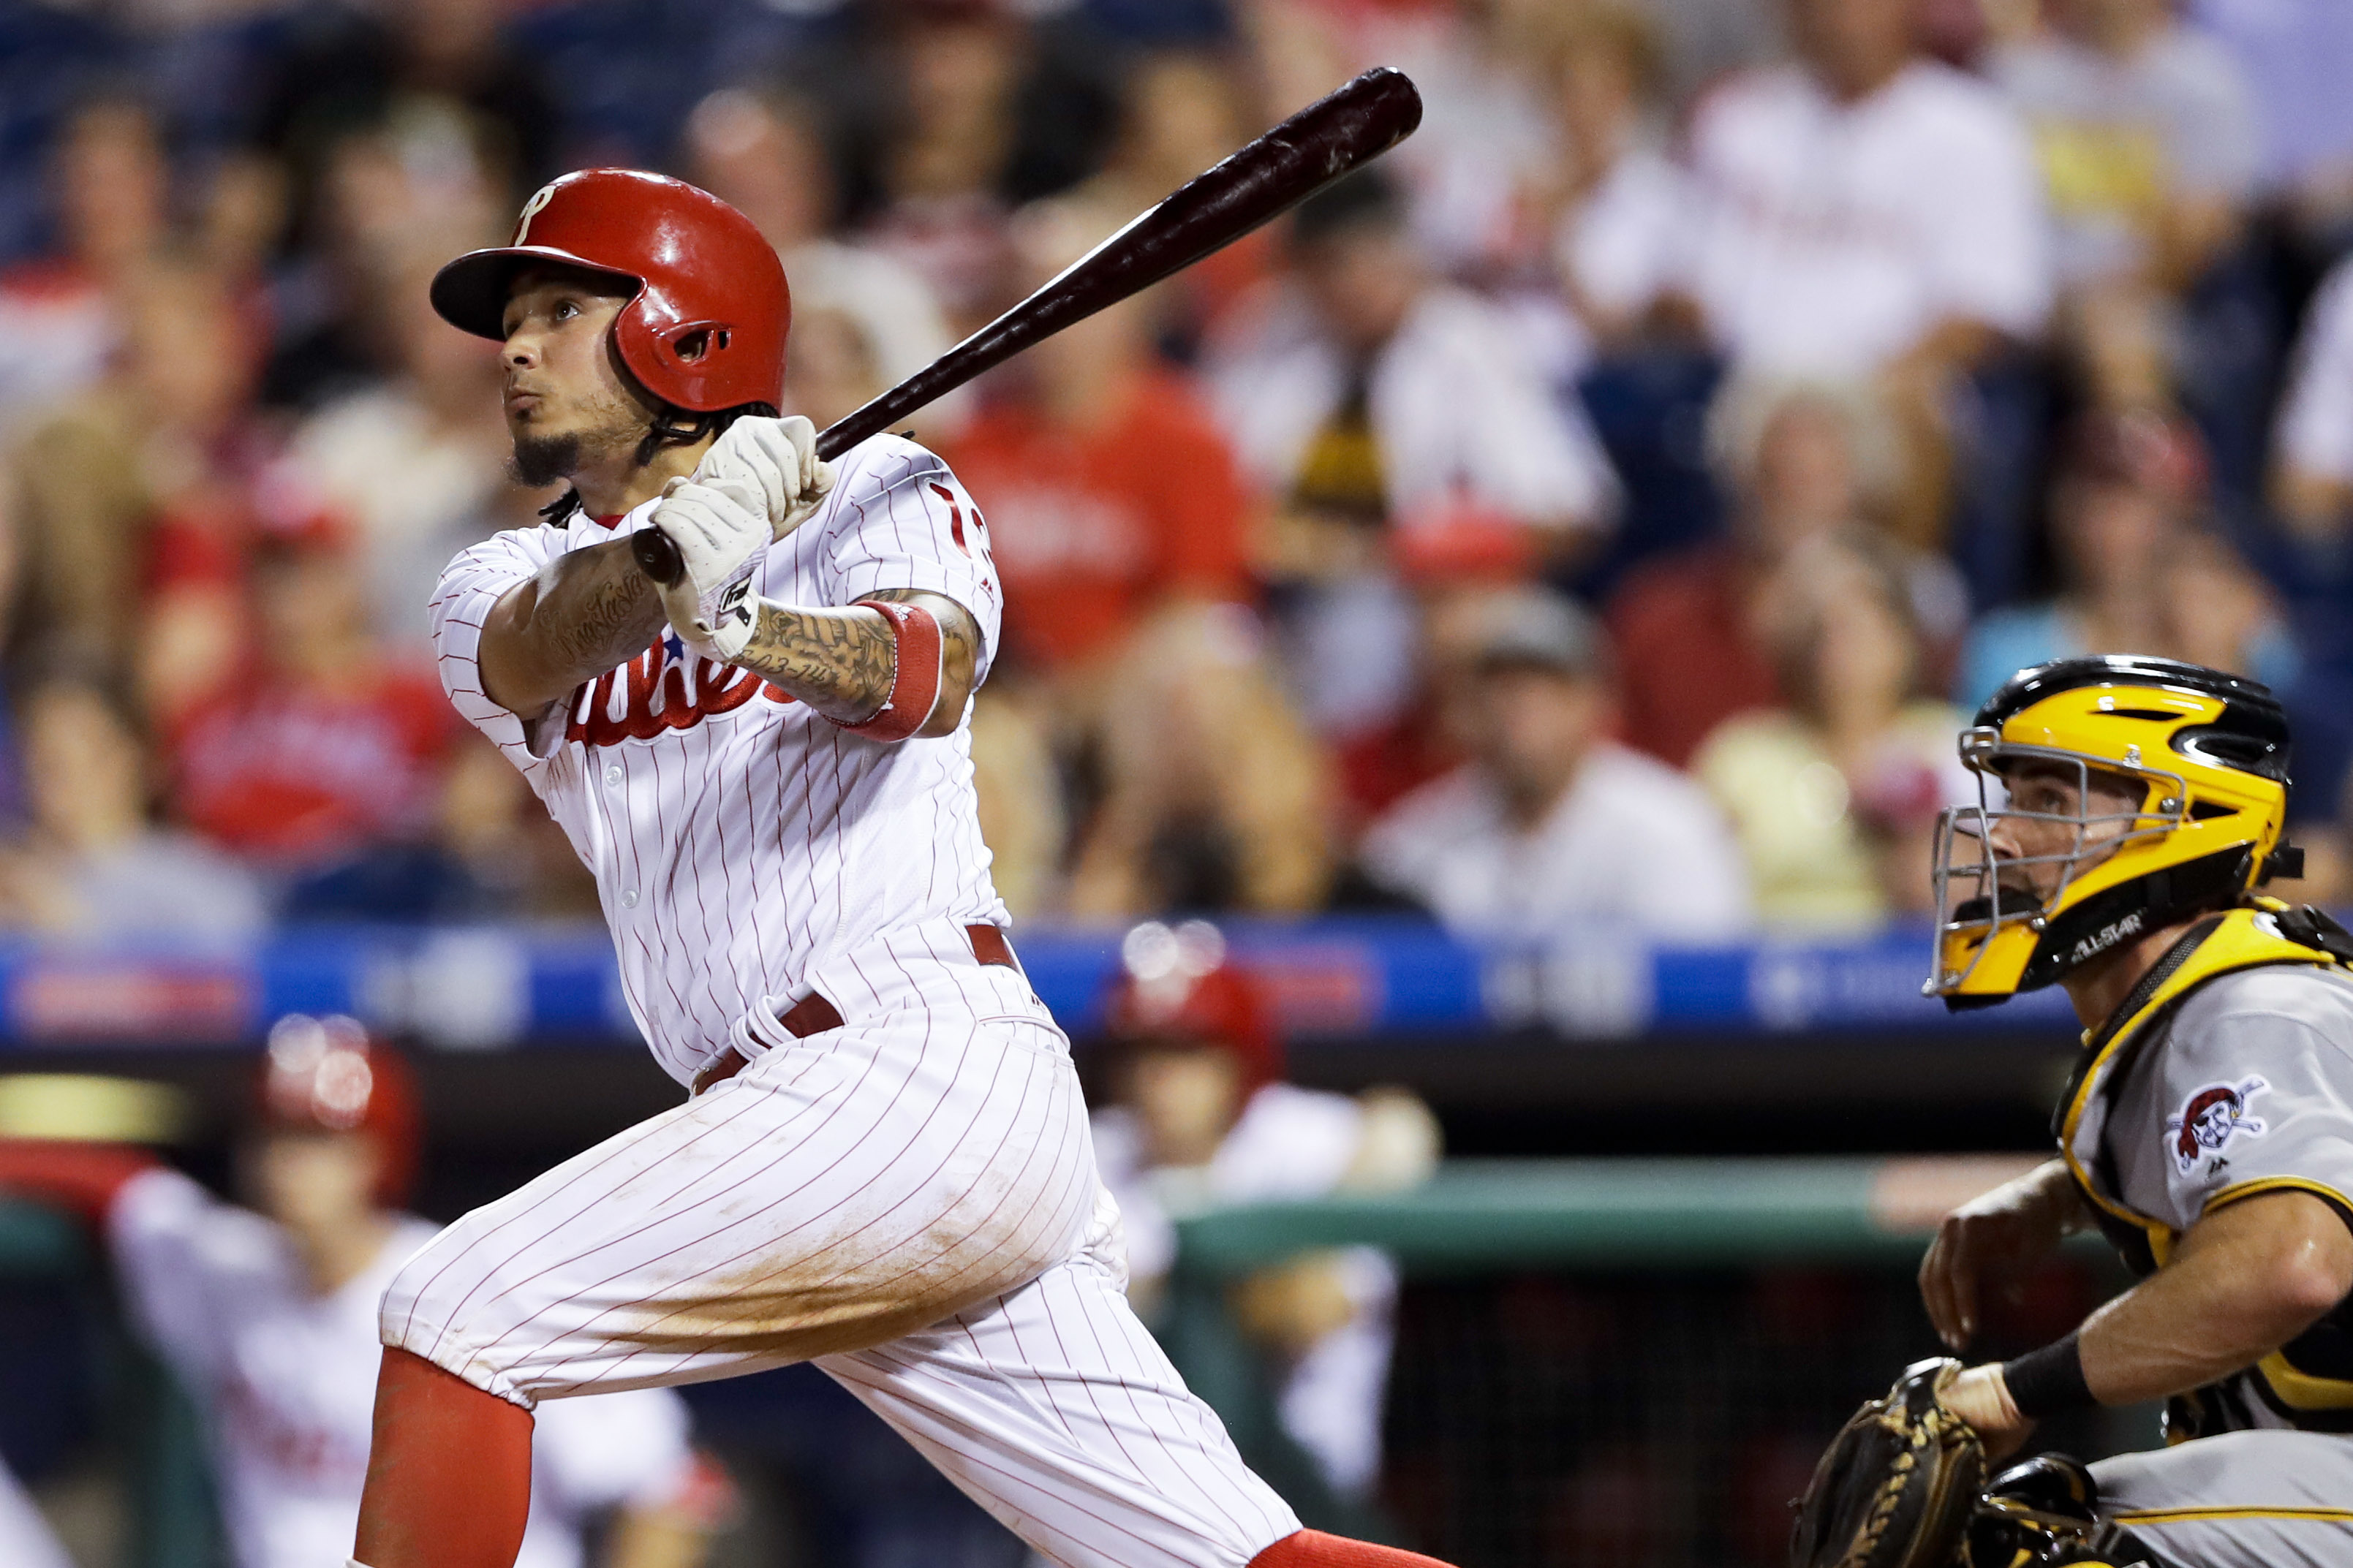 Philadelphia Phillies' Freddy Galvis follows through after hitting a two-run home run off Pittsburgh Pirates starting pitcher Steven Brault during the second inning of a baseball game, Wednesday, Sept. 14, 2016, in Philadelphia. At right is catcher Eric F